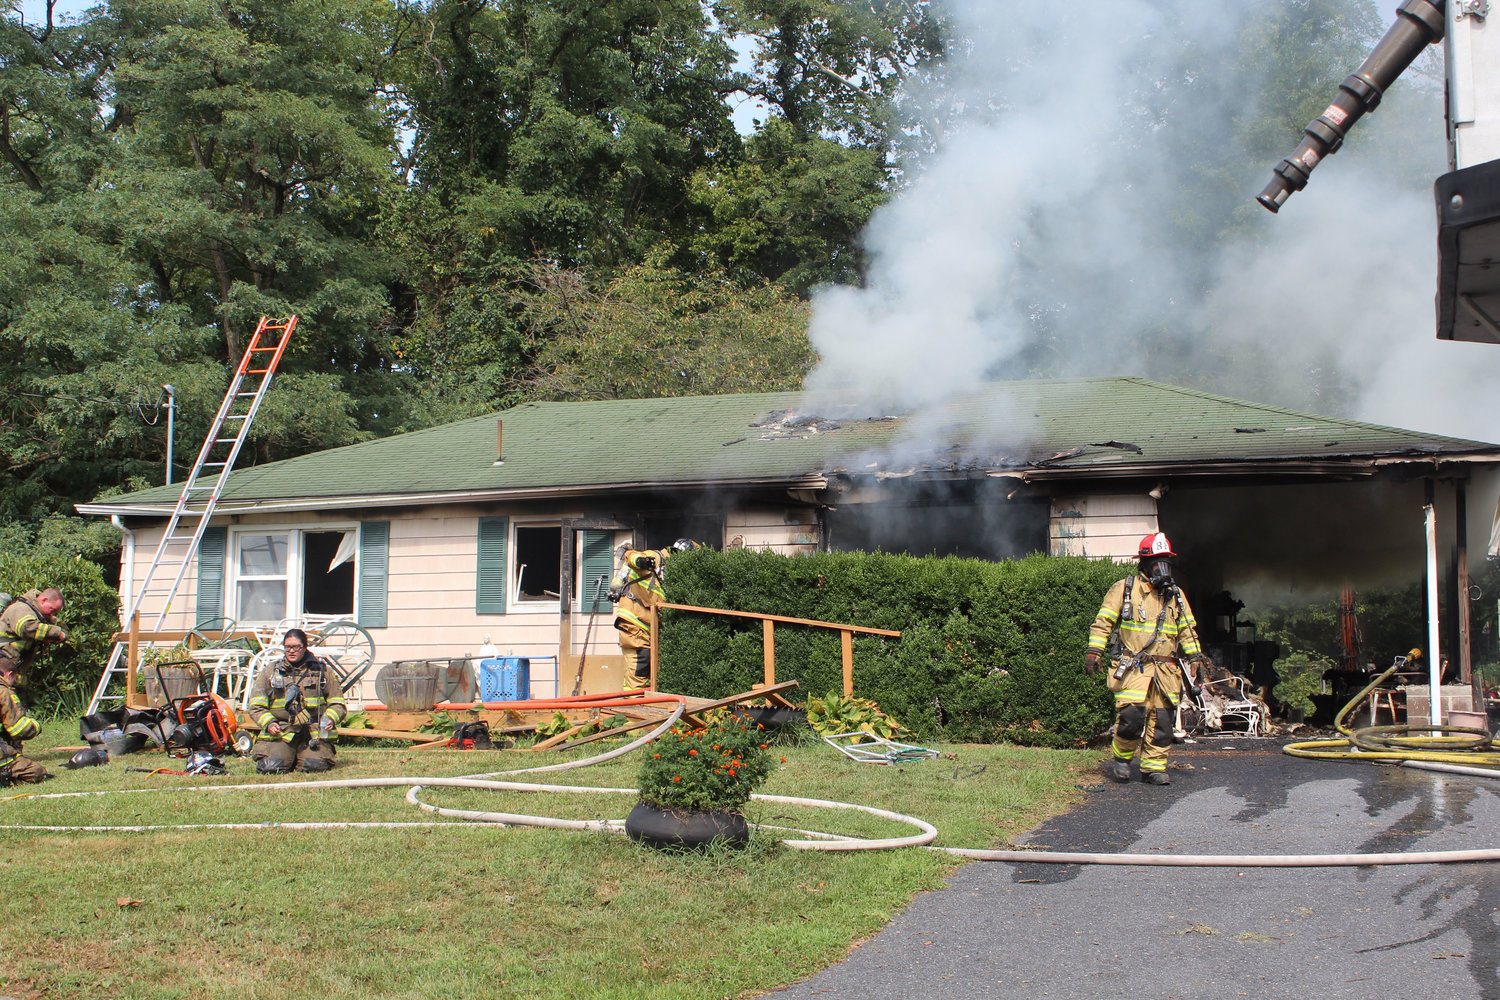 Firefighters responded to a fire on the 1800 block of Water Street this afternoon.